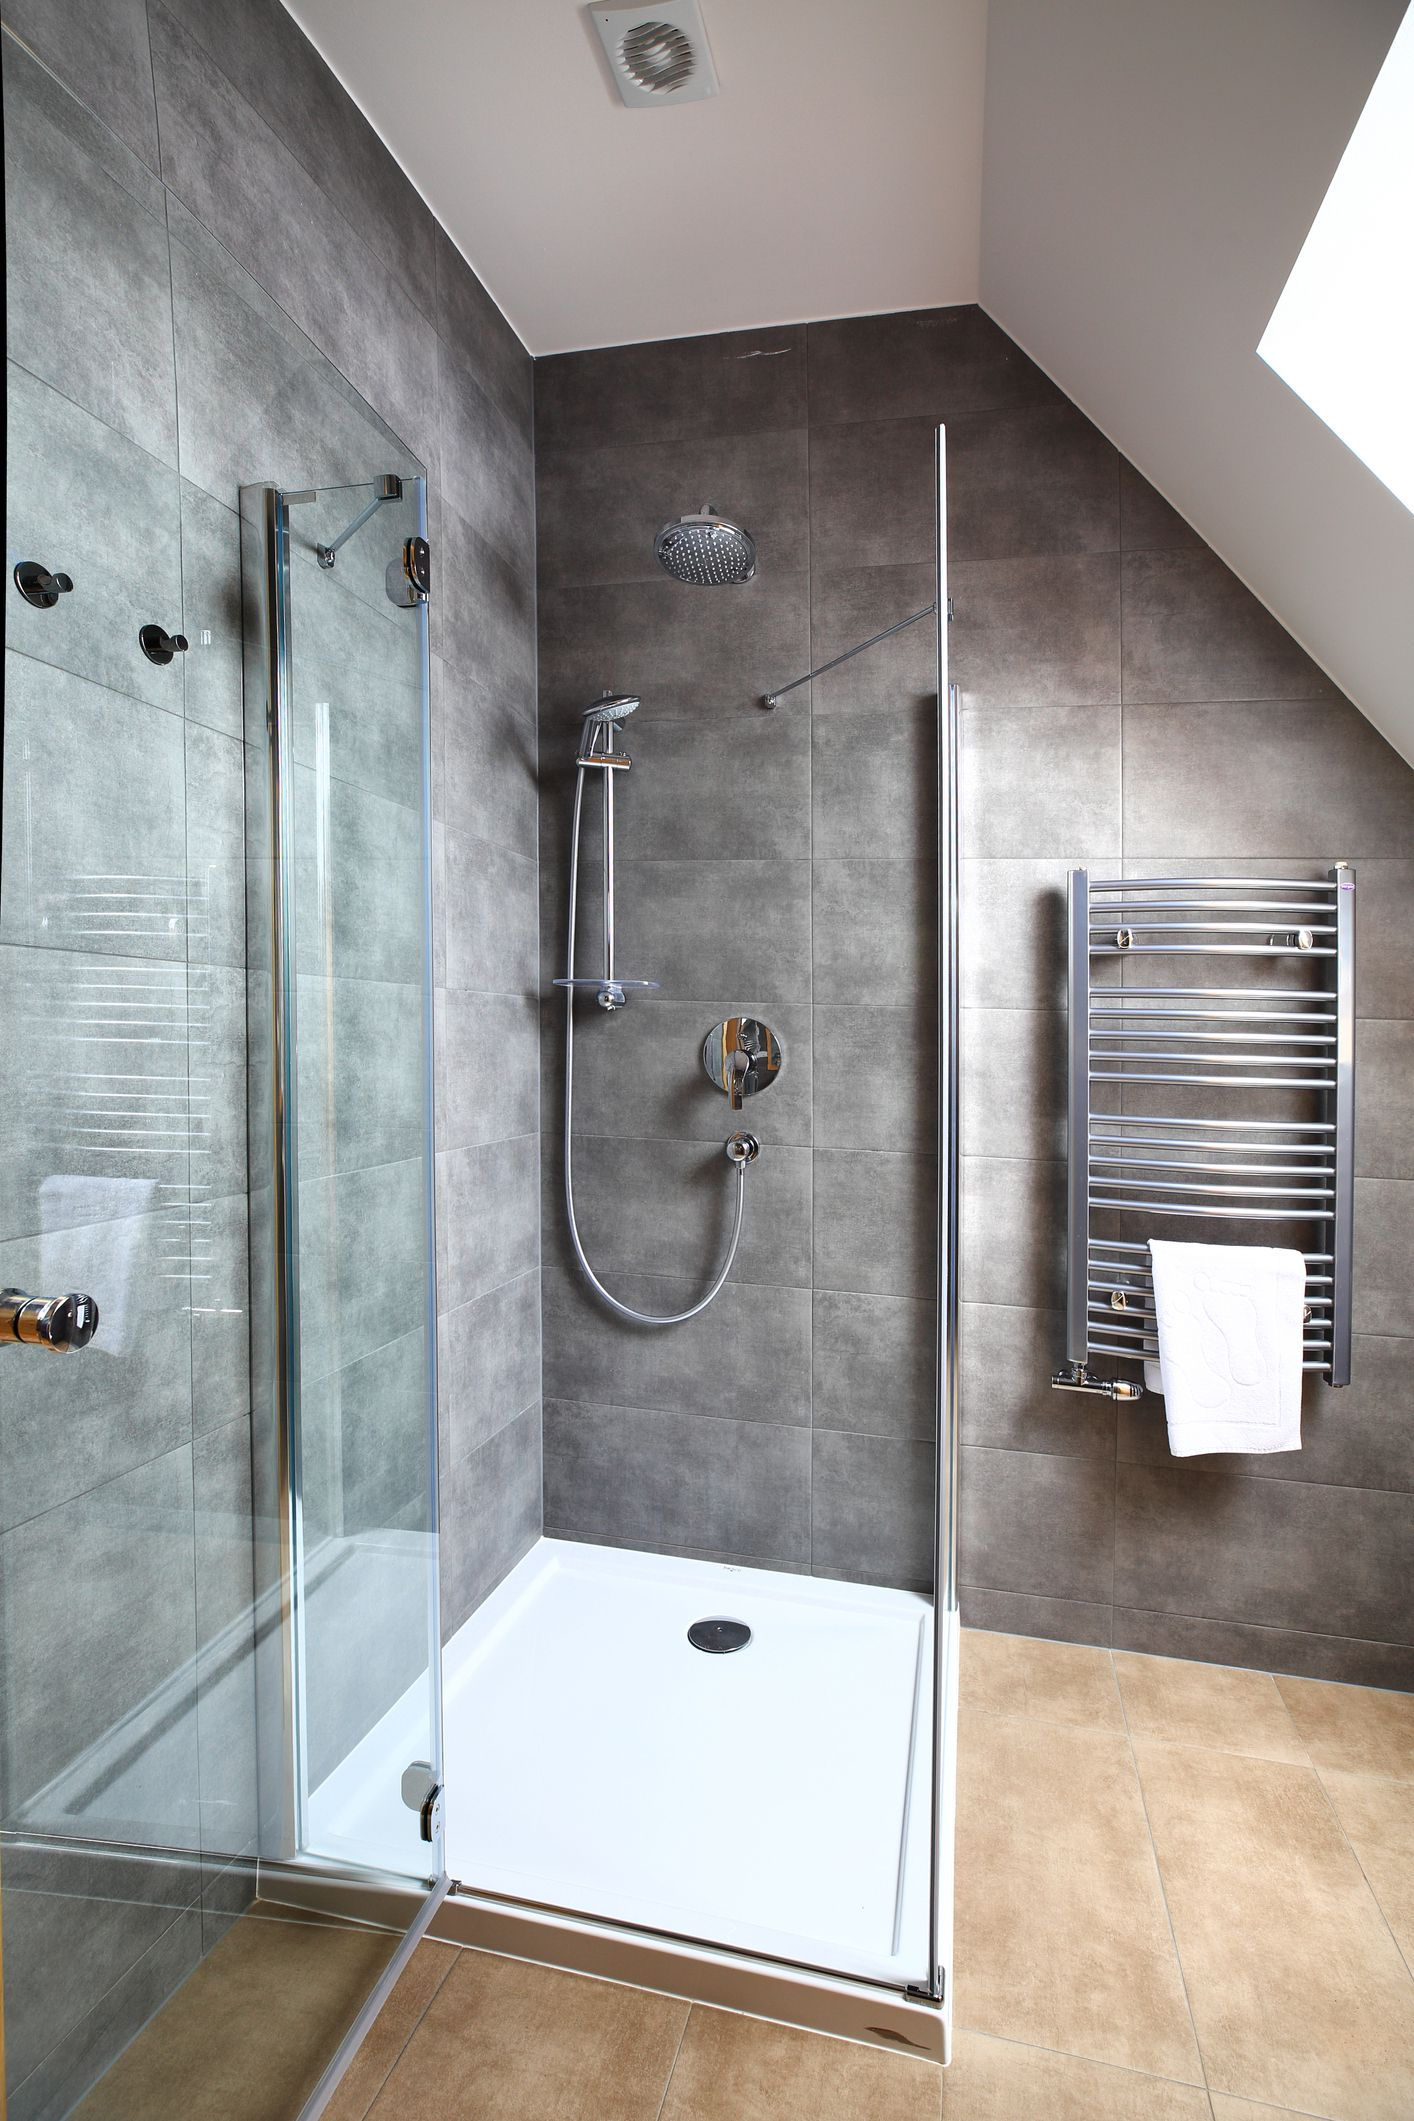 Installing A Tiled Shower Stall With Polyurethane Pan